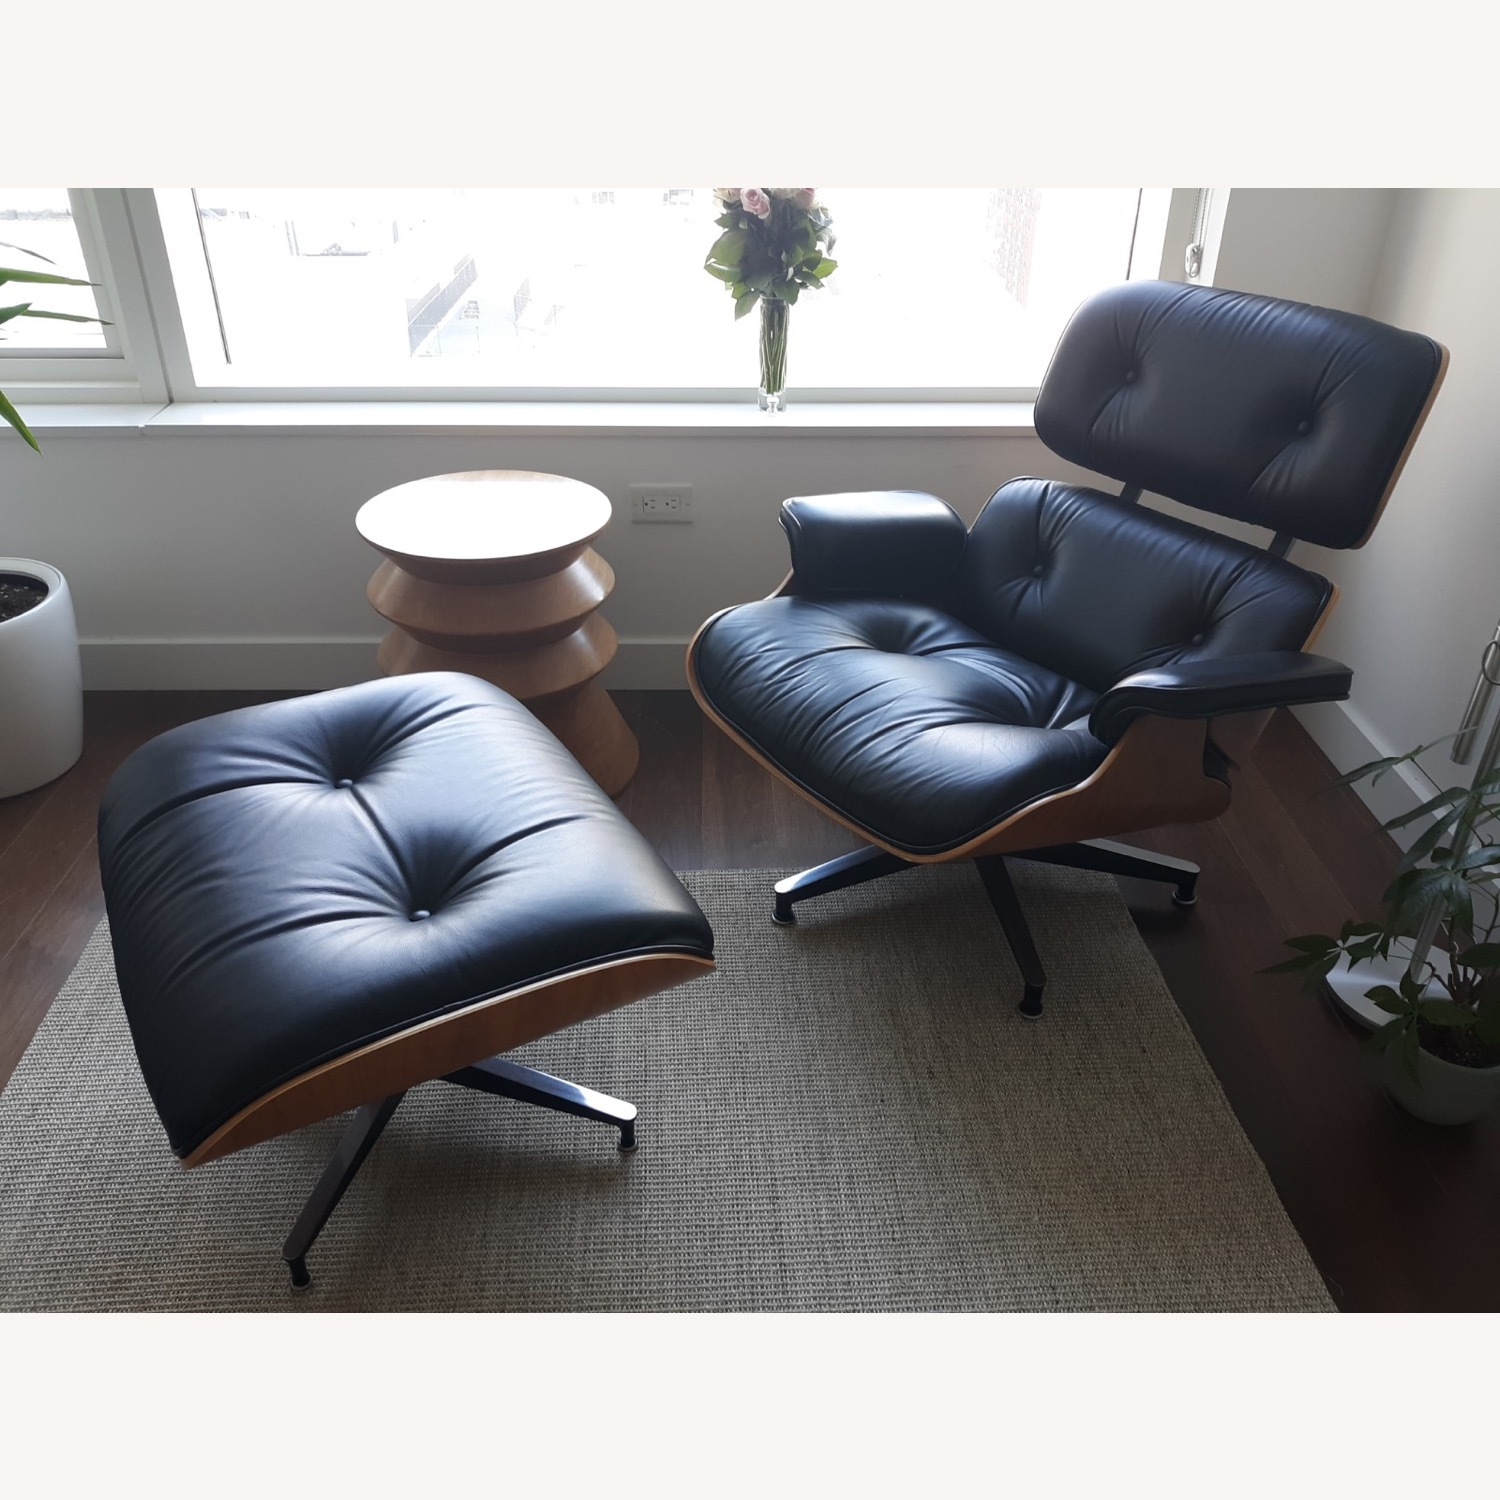 Herman Miller Eames Lounge Chair and Ottoman - image-26